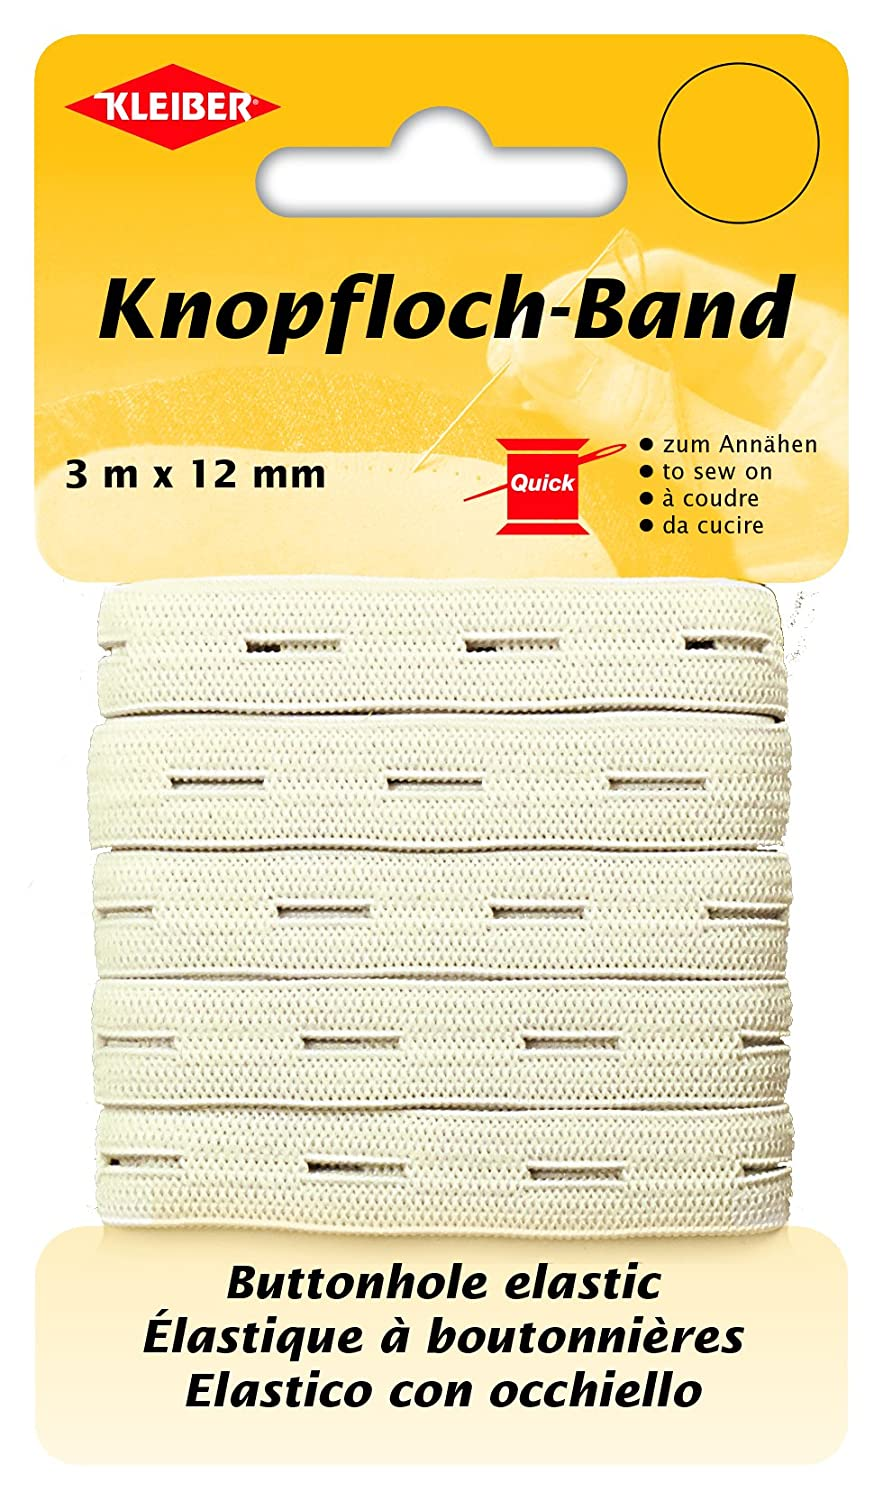 Kleiber Button Hole Elastic, White, 3 m x 12 mm 710-91